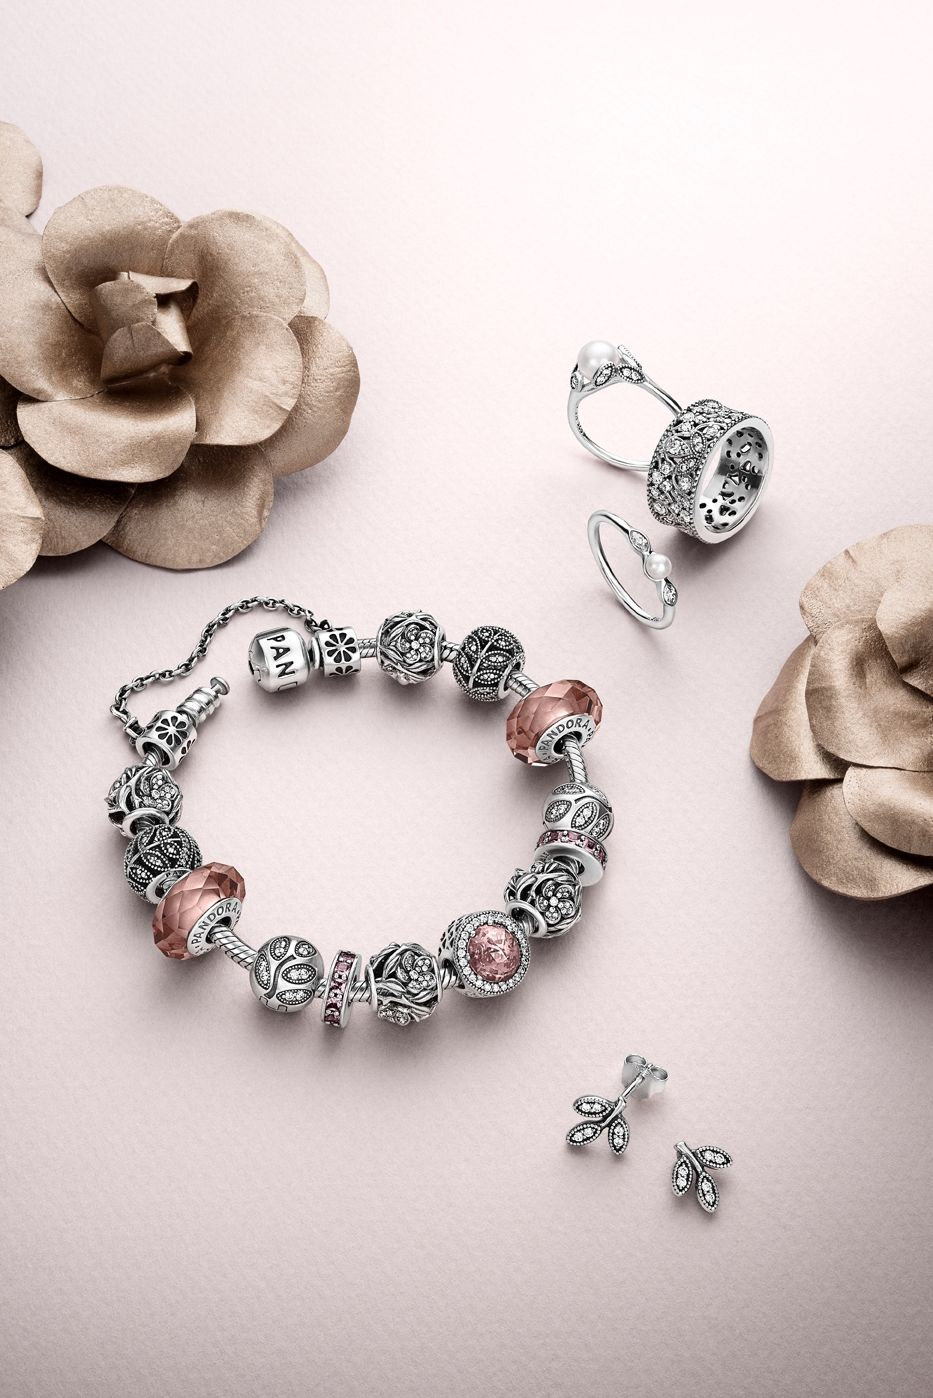 Pandoraus autumn collection is filled with spectacular pieces